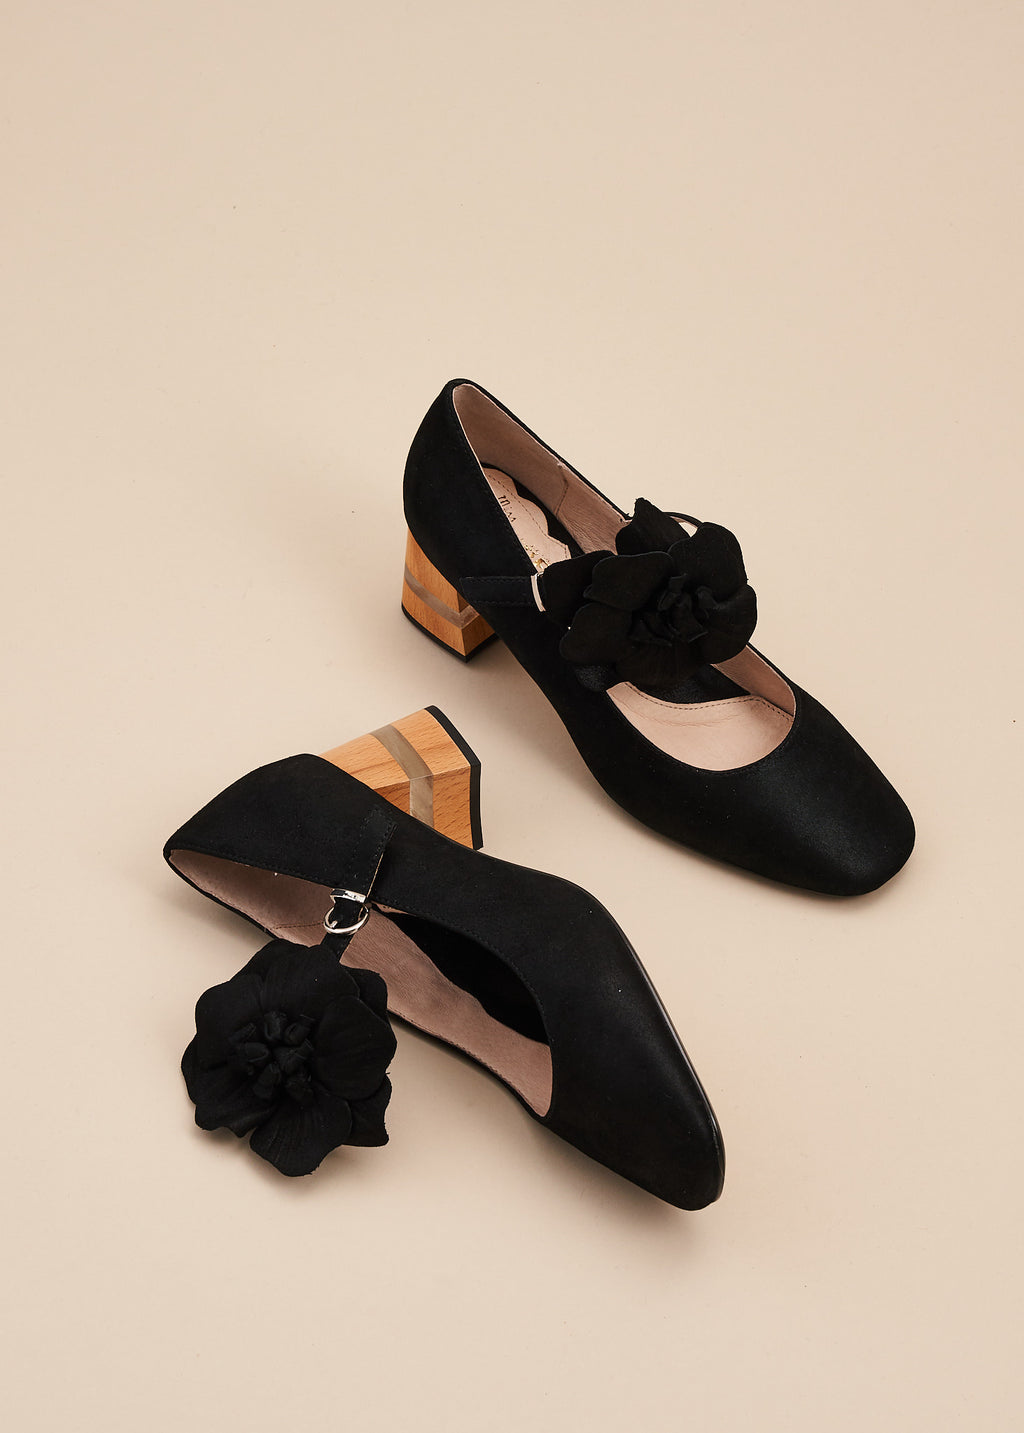 Pamela in black soft leather by Miss L Fire is a soft square toe Mary Jane with a detachable leather flower trim , with 6cm wood and plexiglass heel.